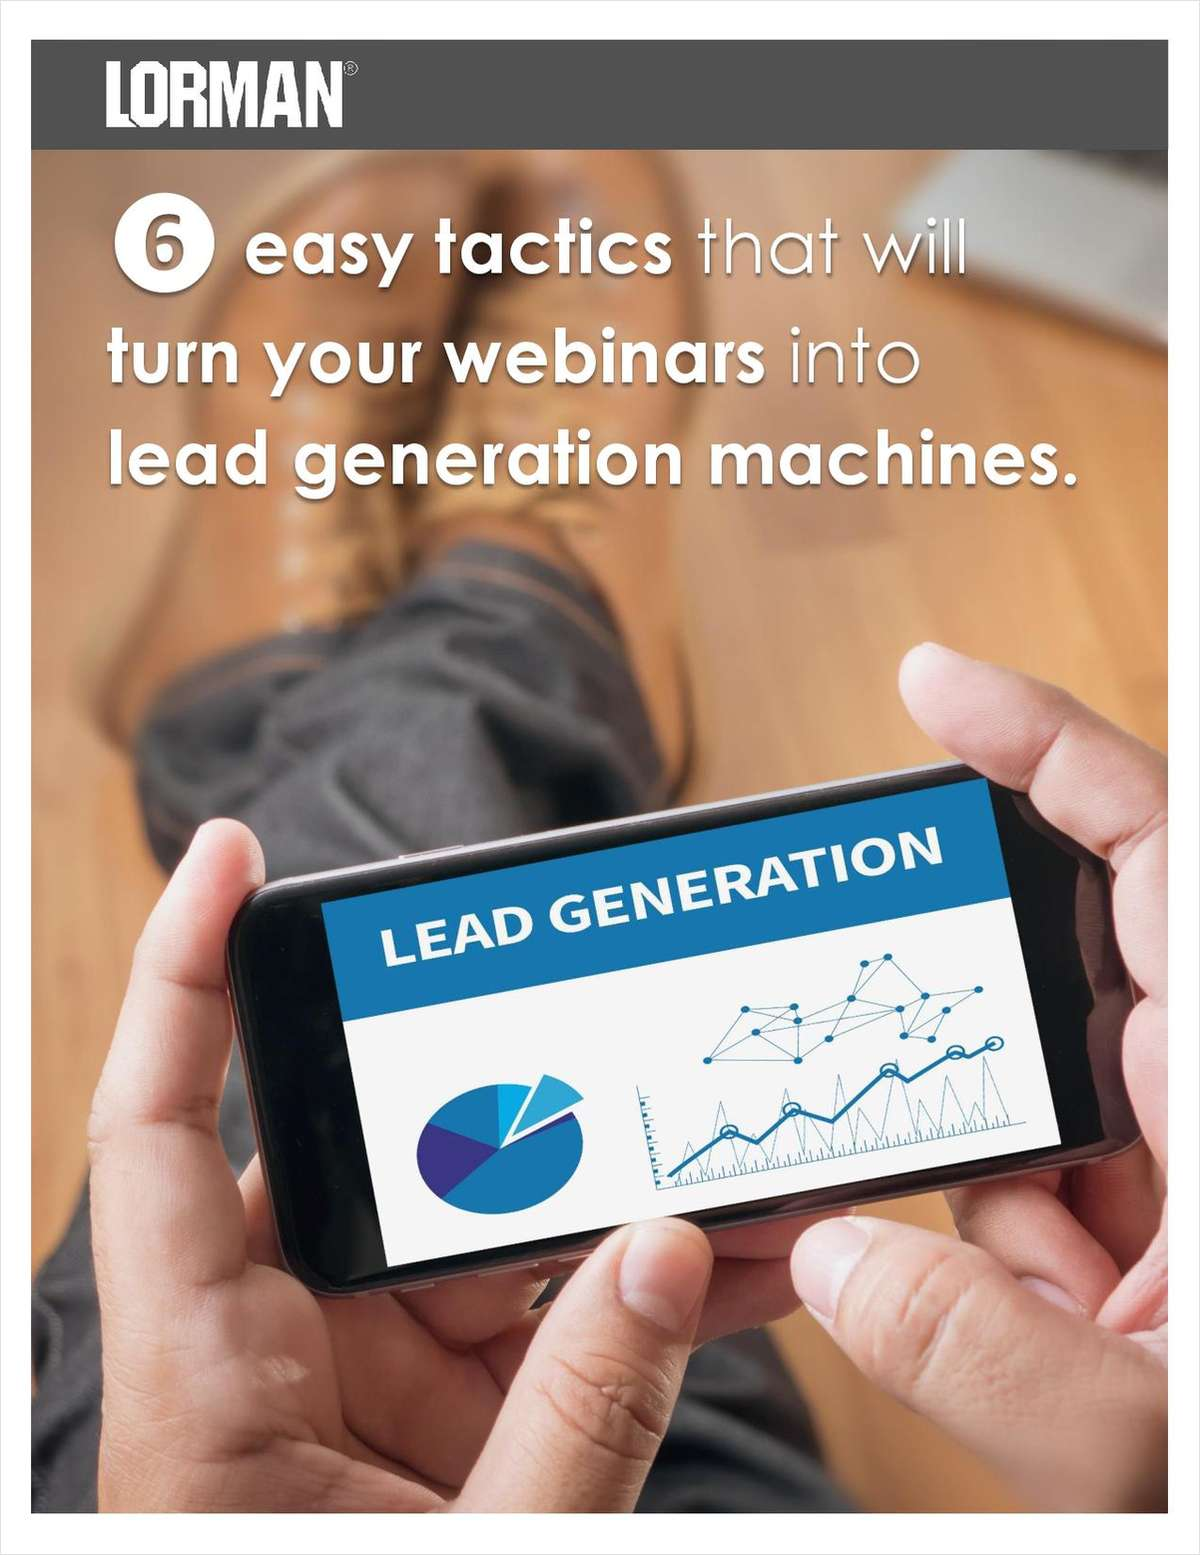 6 Easy Tactics That Will Turn Your Webinars into Lead Generation Machines